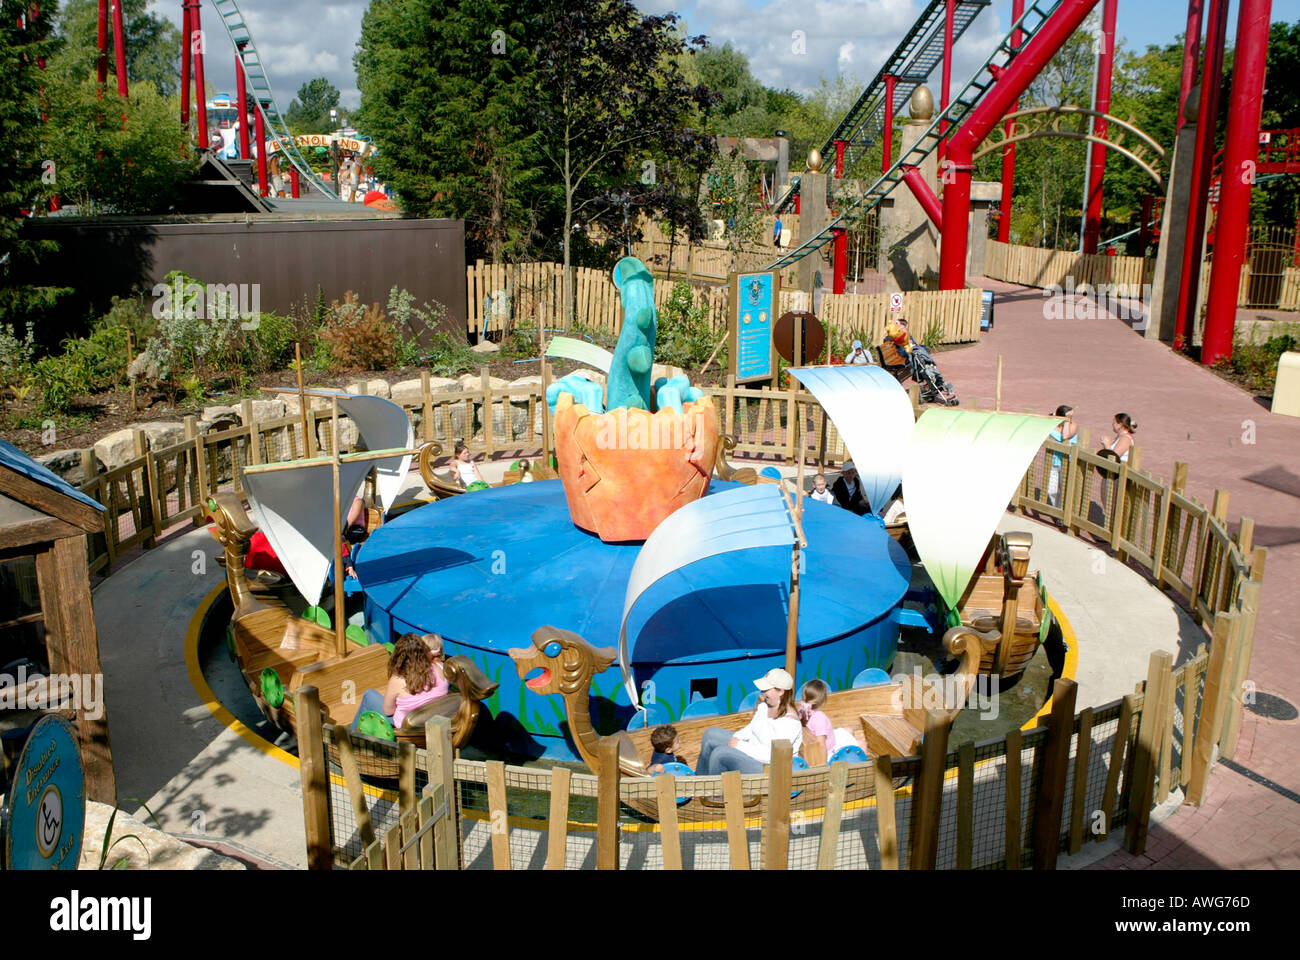 Land Of The Dragons At Chessington World Adventures Surrey UK